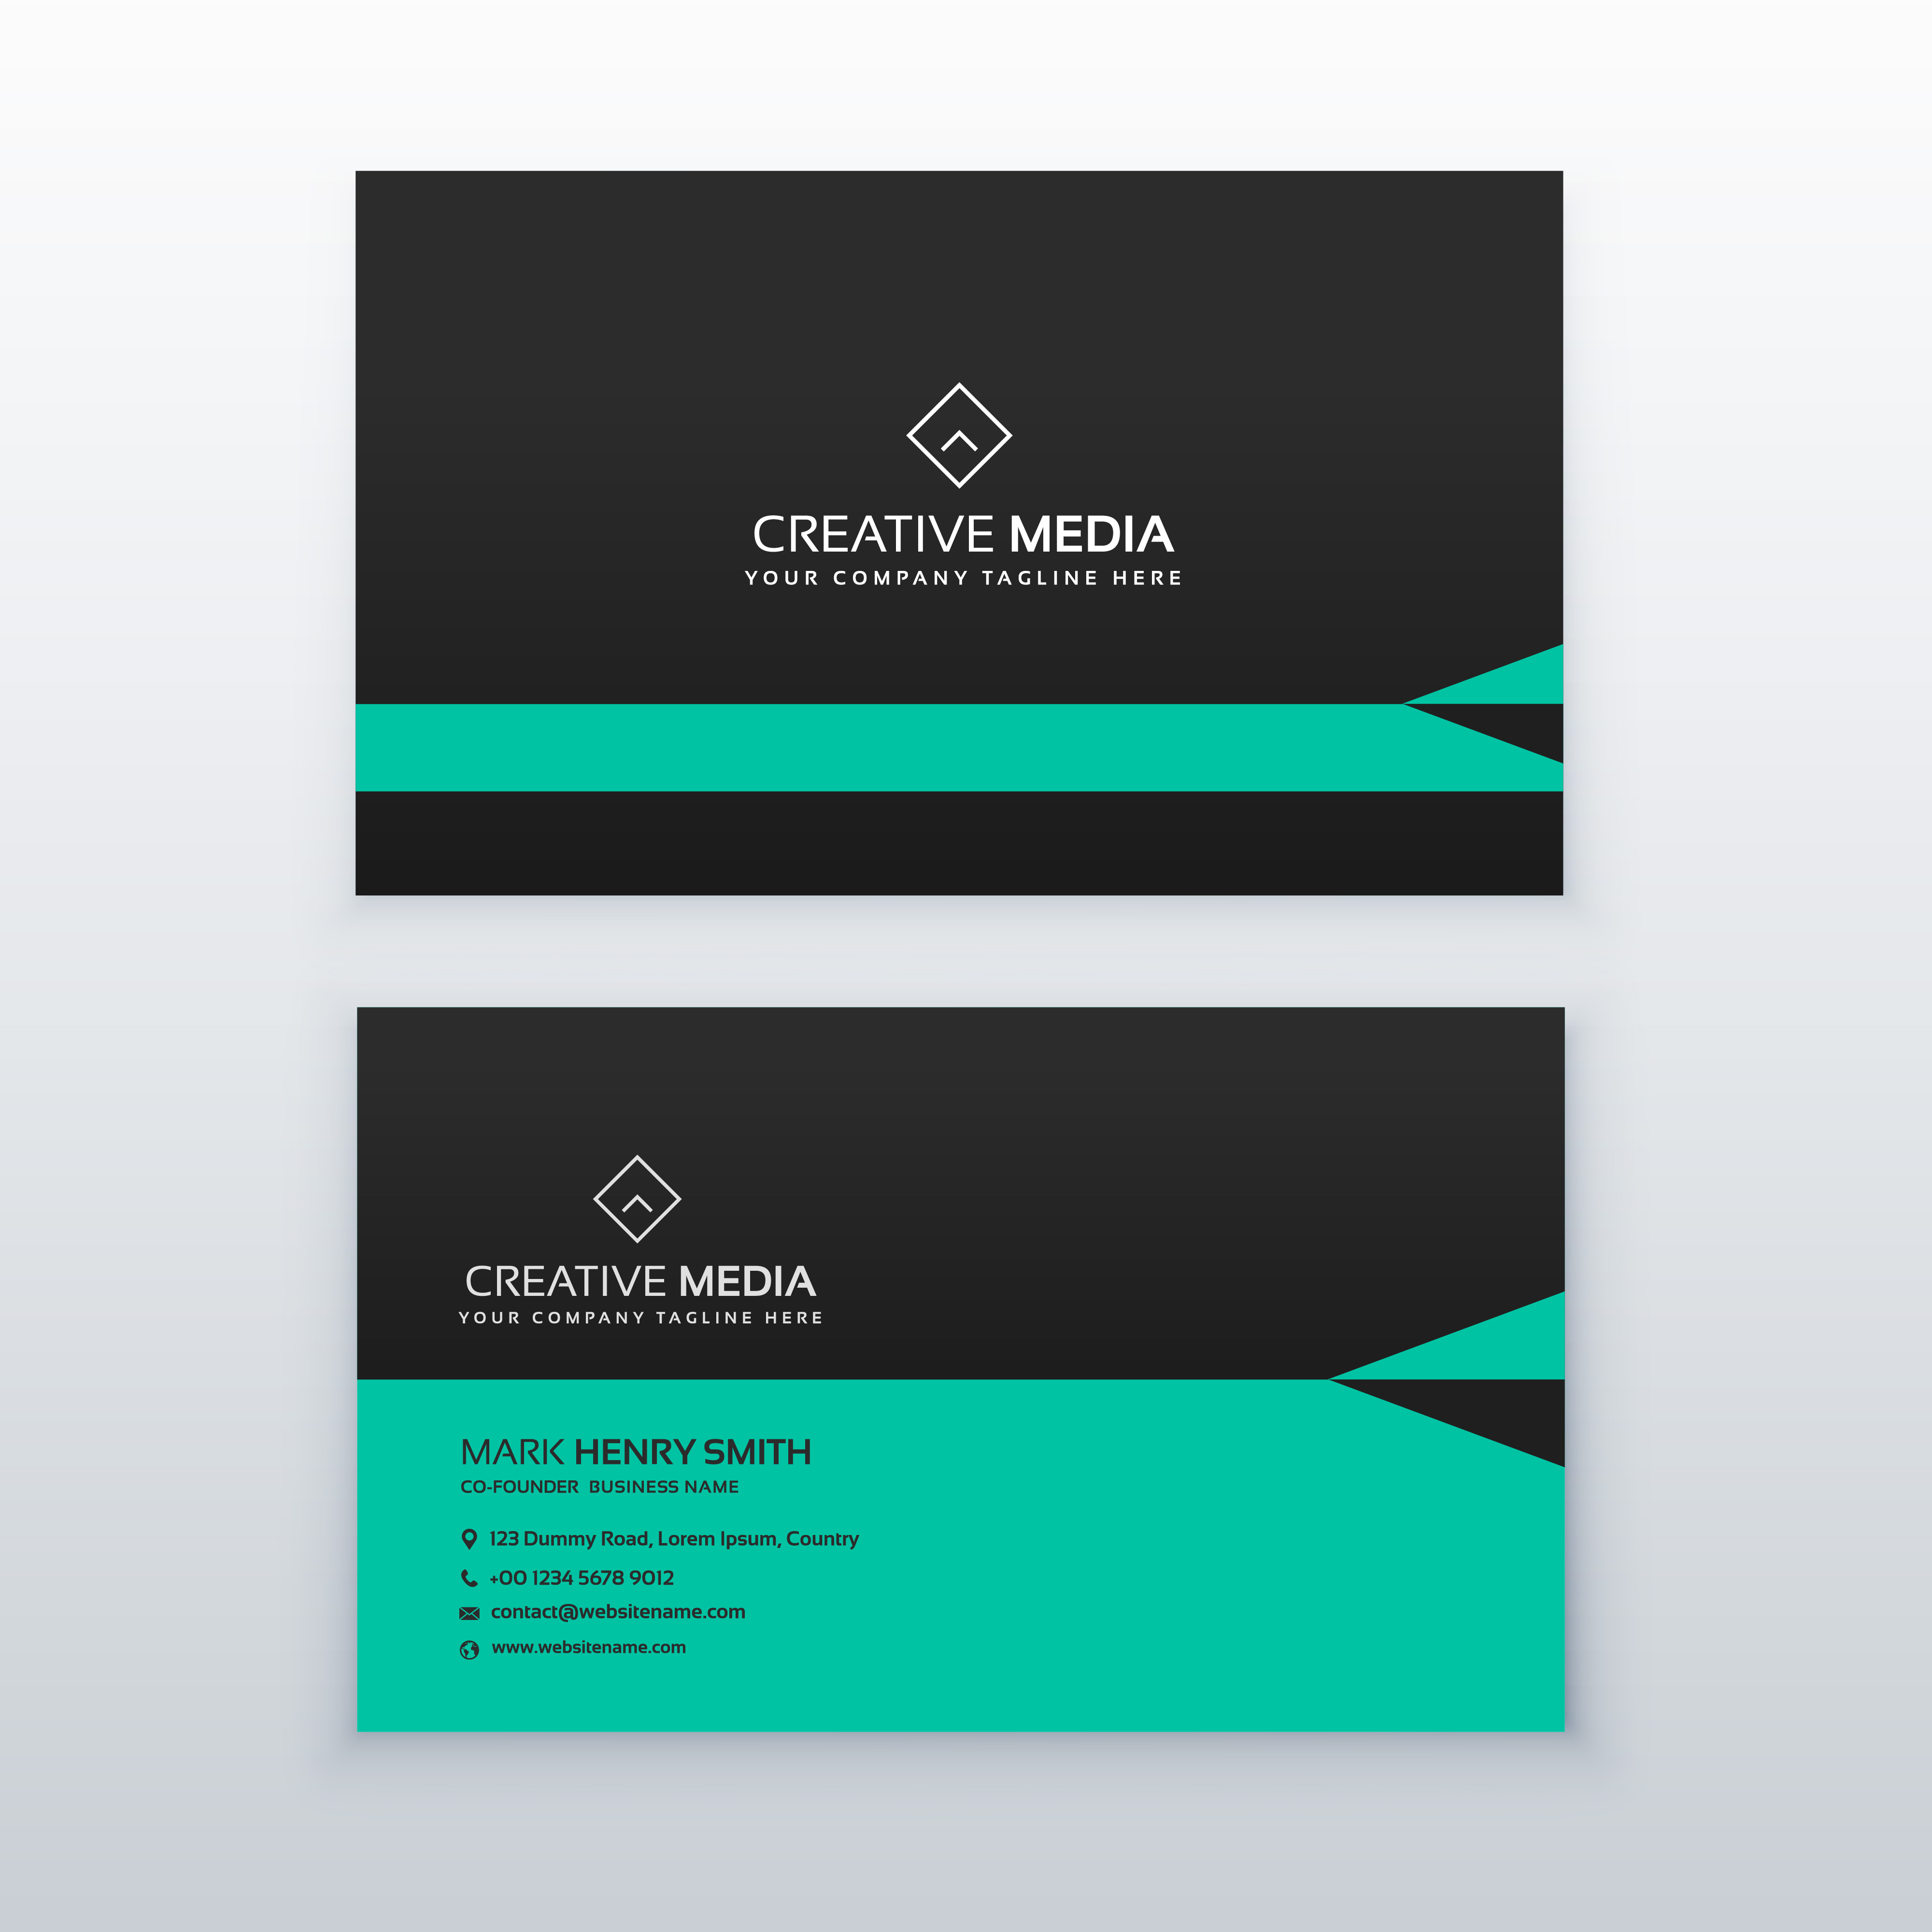 green and black business card design in simple style